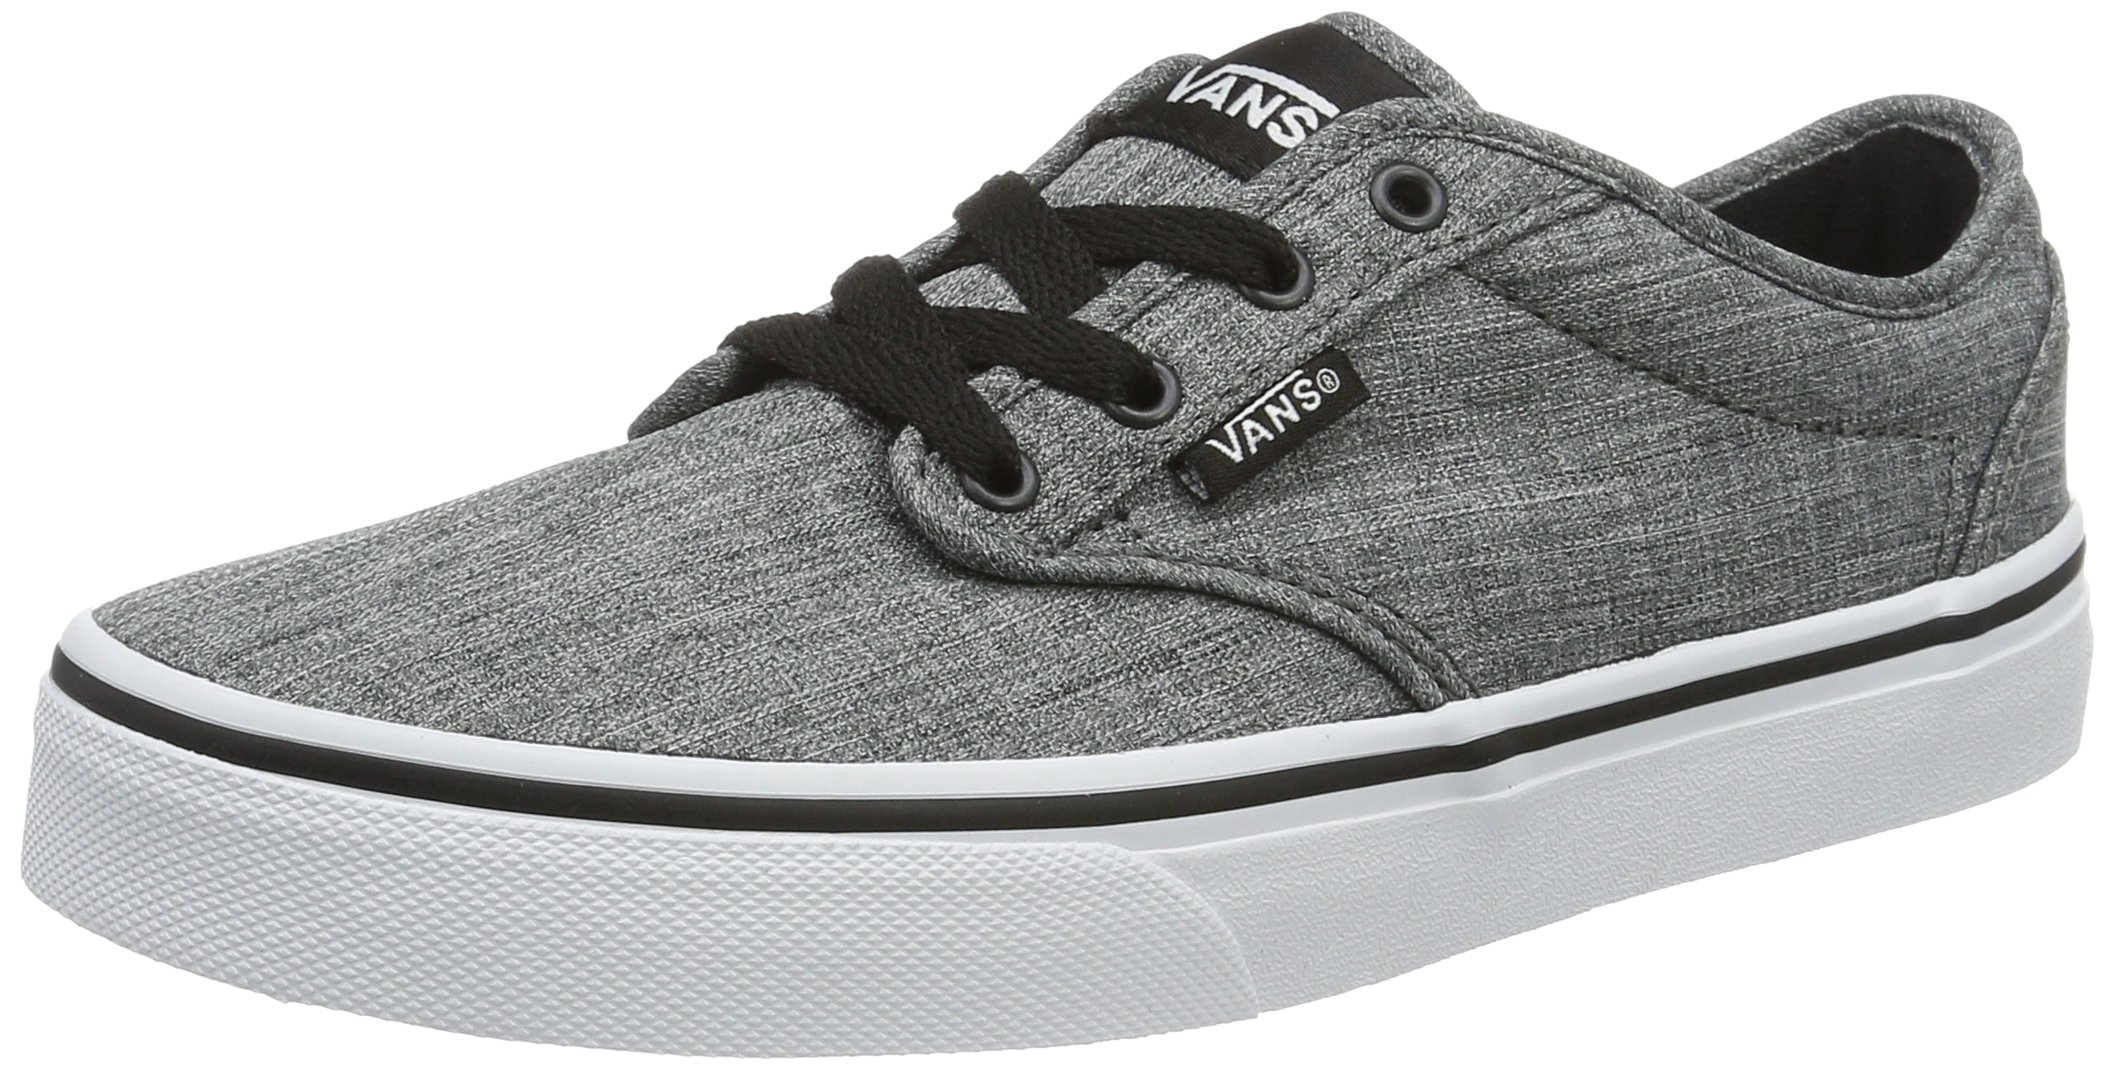 6a2cffbe35 Galleon - Vans Kids Atwood Shoes Rock Textile Black White Size 3